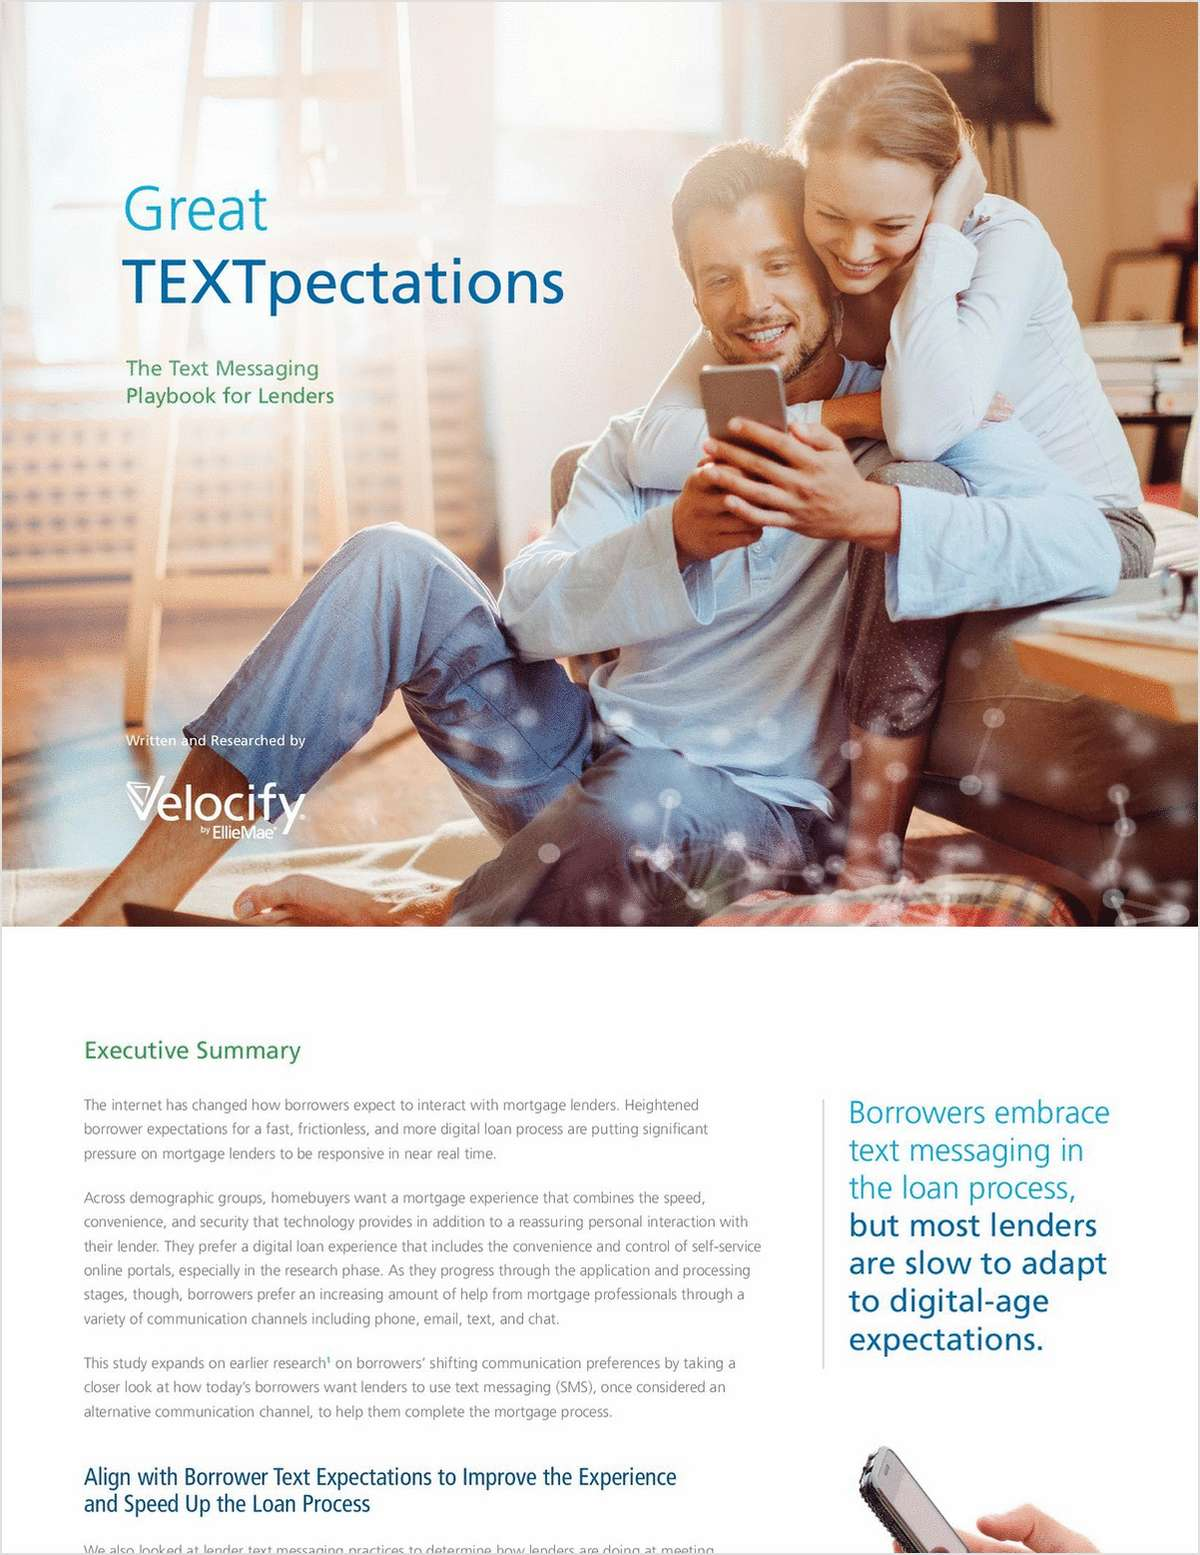 Great TEXTpectations: The Text Messaging Playbook for Lenders